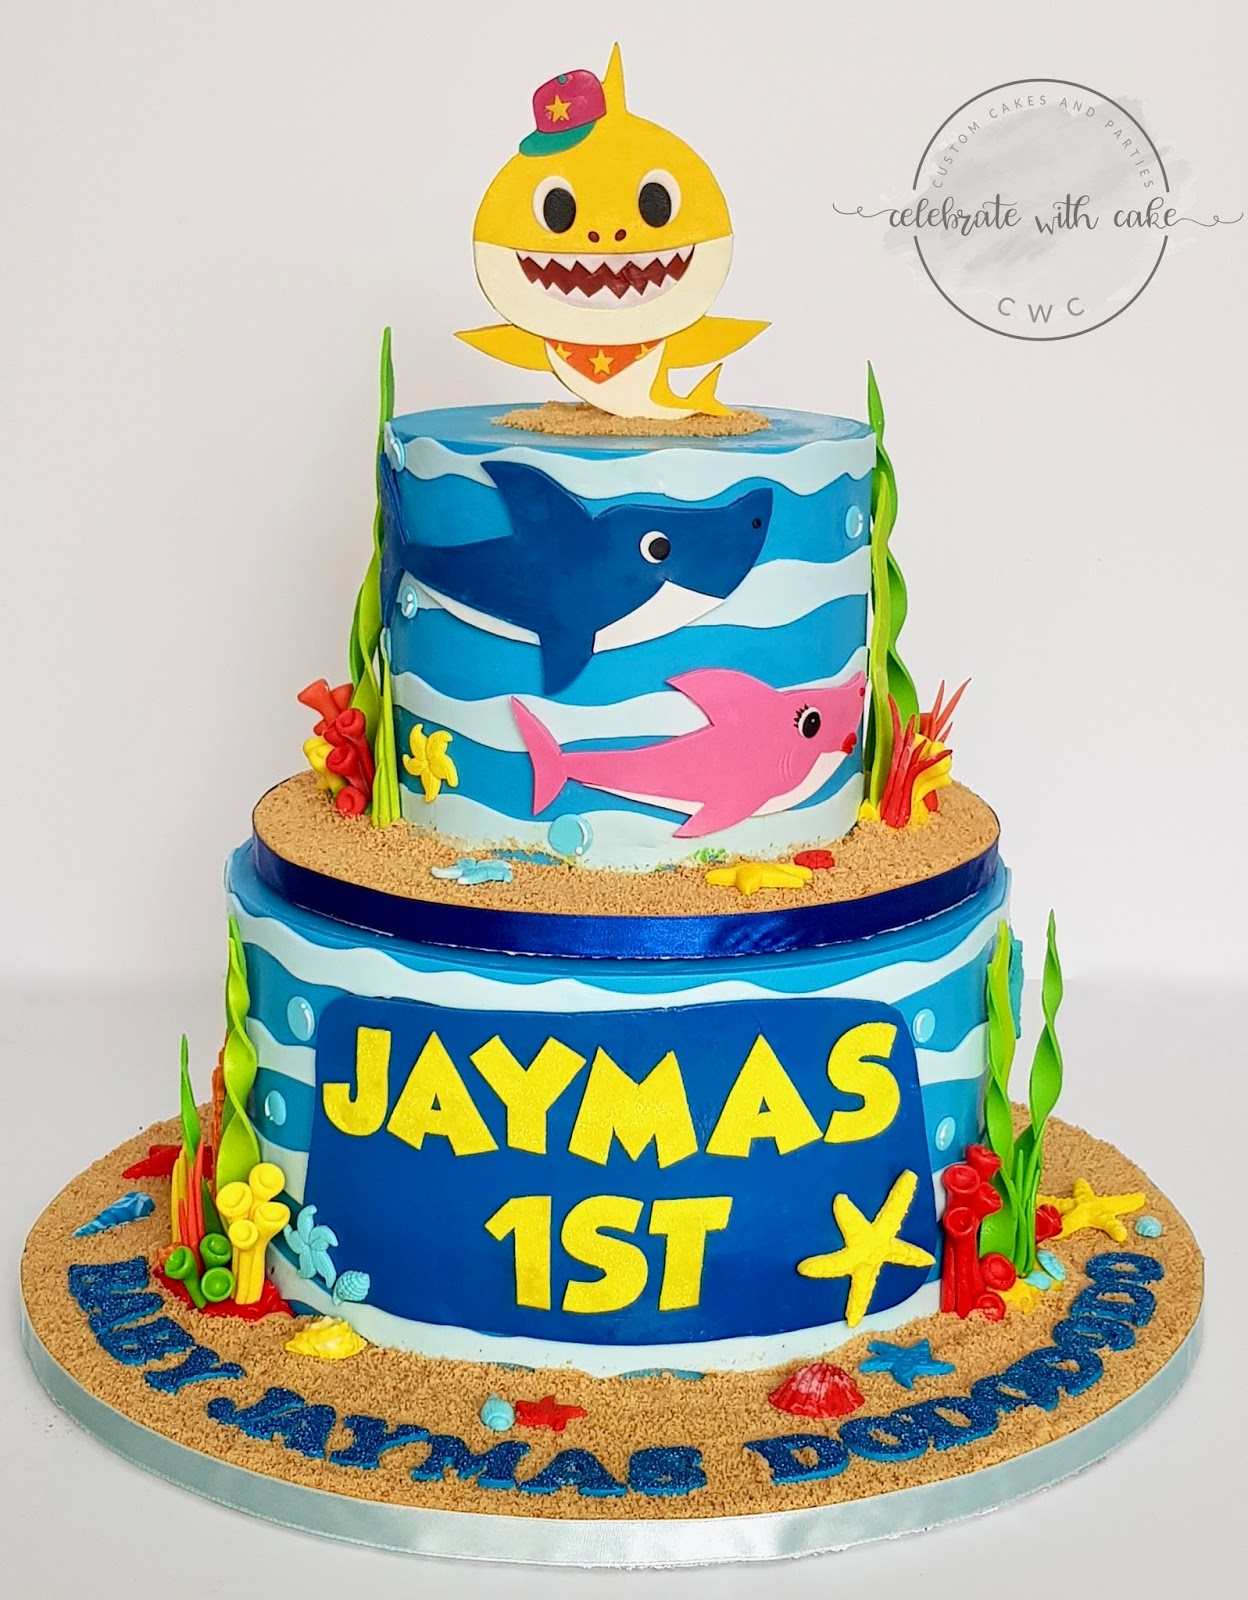 Celebrate With Cake Baby Shark Rotating Two Tiers 1st Birthday